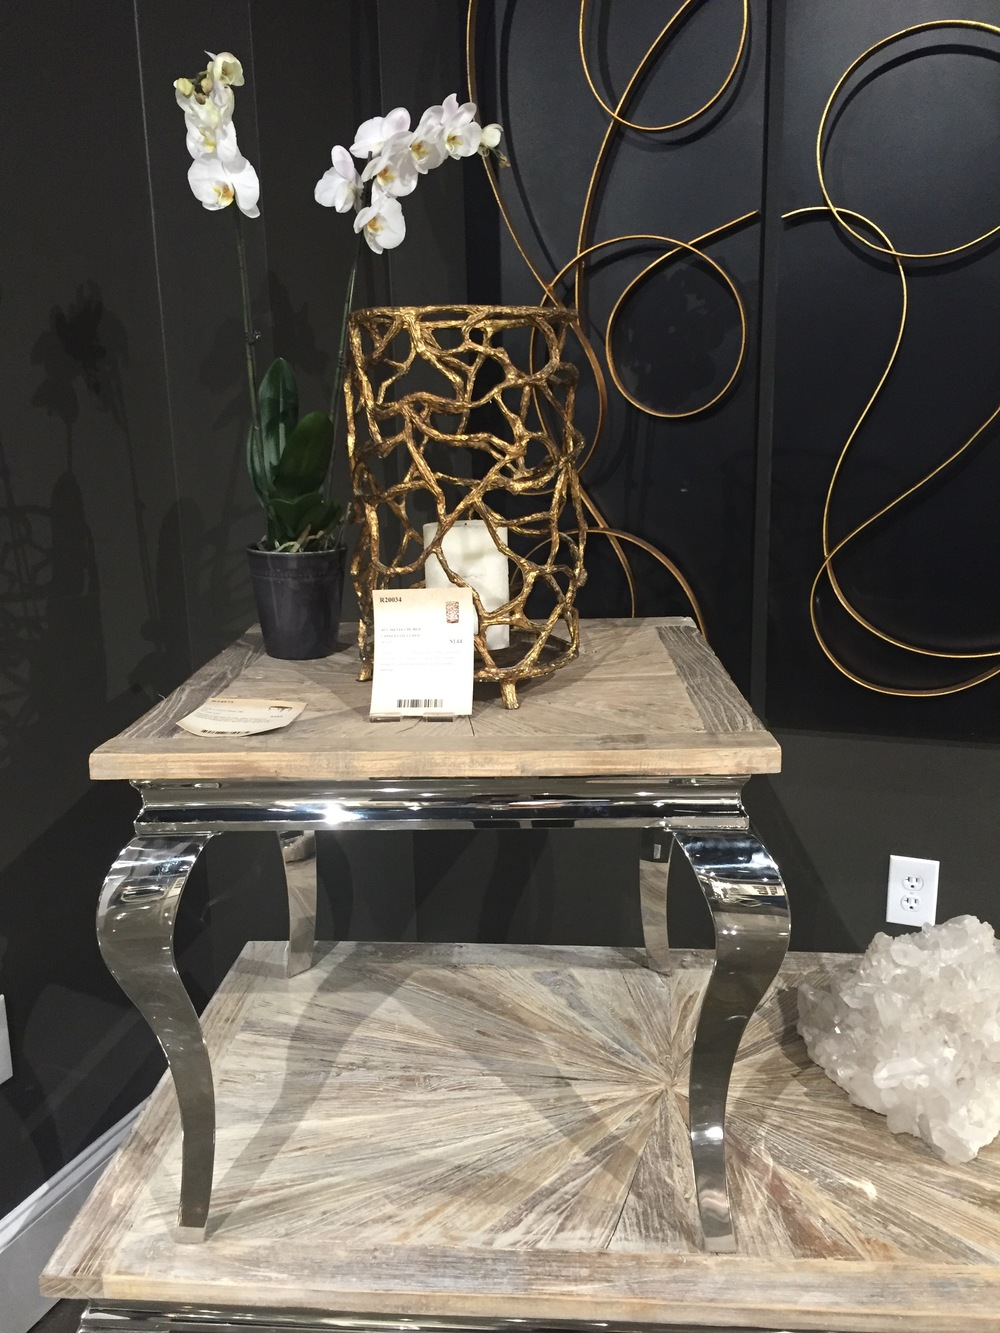 I loved the juxtaposition of the shiny metal and bleached wood in this table offered by Uttermost